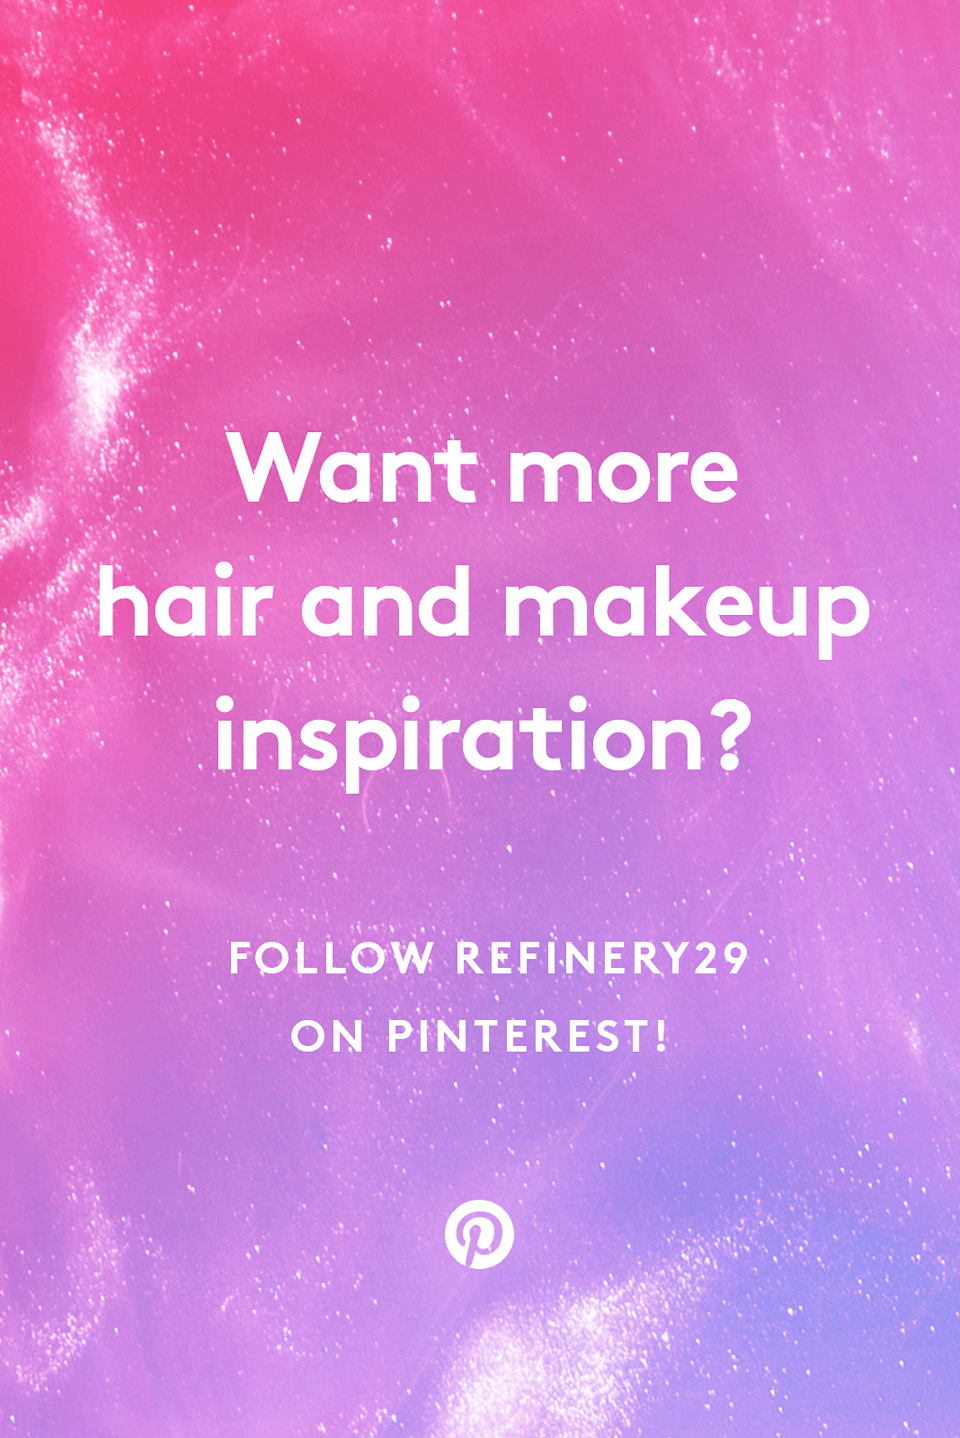 "<p>Like this post? There's more. Get tons of beauty tips, tutorials, and inspiration on the <a href=""https://www.pinterest.com/refinery29/?auto_follow=true"" rel=""nofollow noopener"" target=""_blank"" data-ylk=""slk:Refinery29 Pinterest page"" class=""link rapid-noclick-resp"">Refinery29 Pinterest page</a> — we'll see you there!</p>"